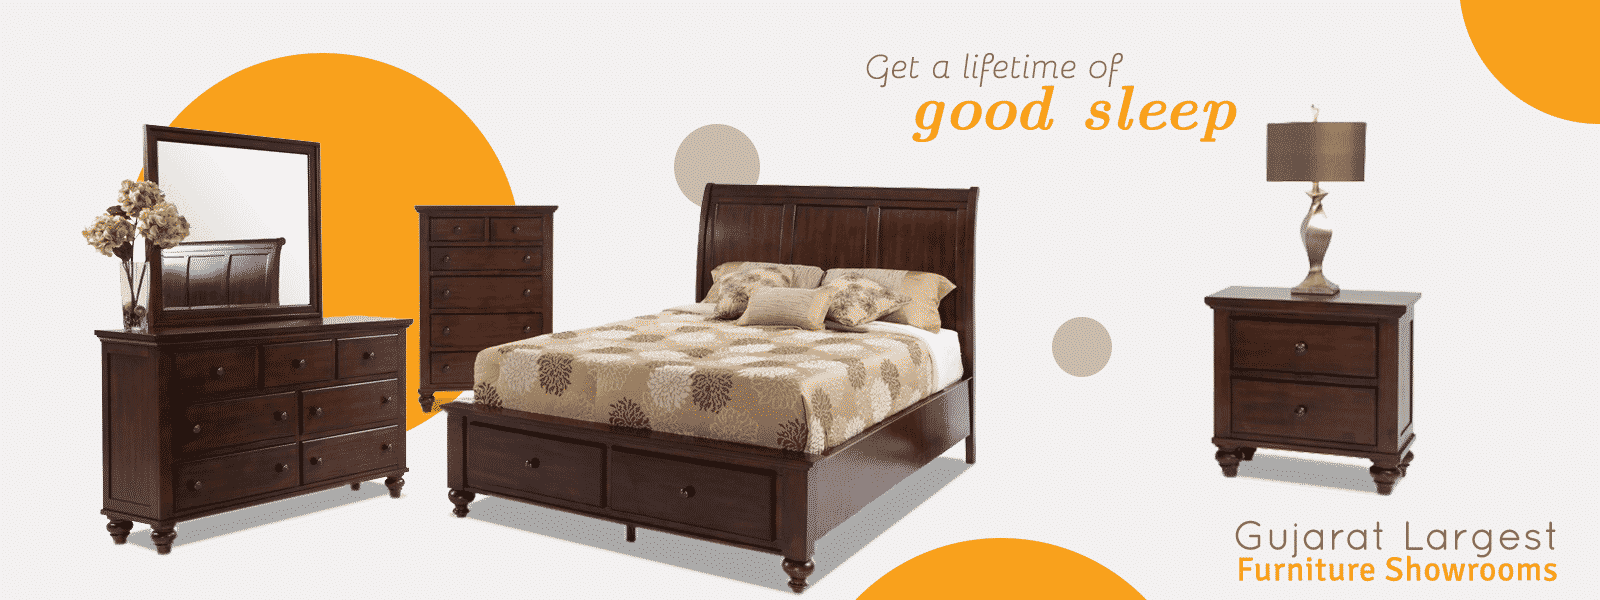 Wooden Furniture Ahmedabad, Indian Furniture Shop Ahmedabad, Bedroom Furniture Ahmedabad